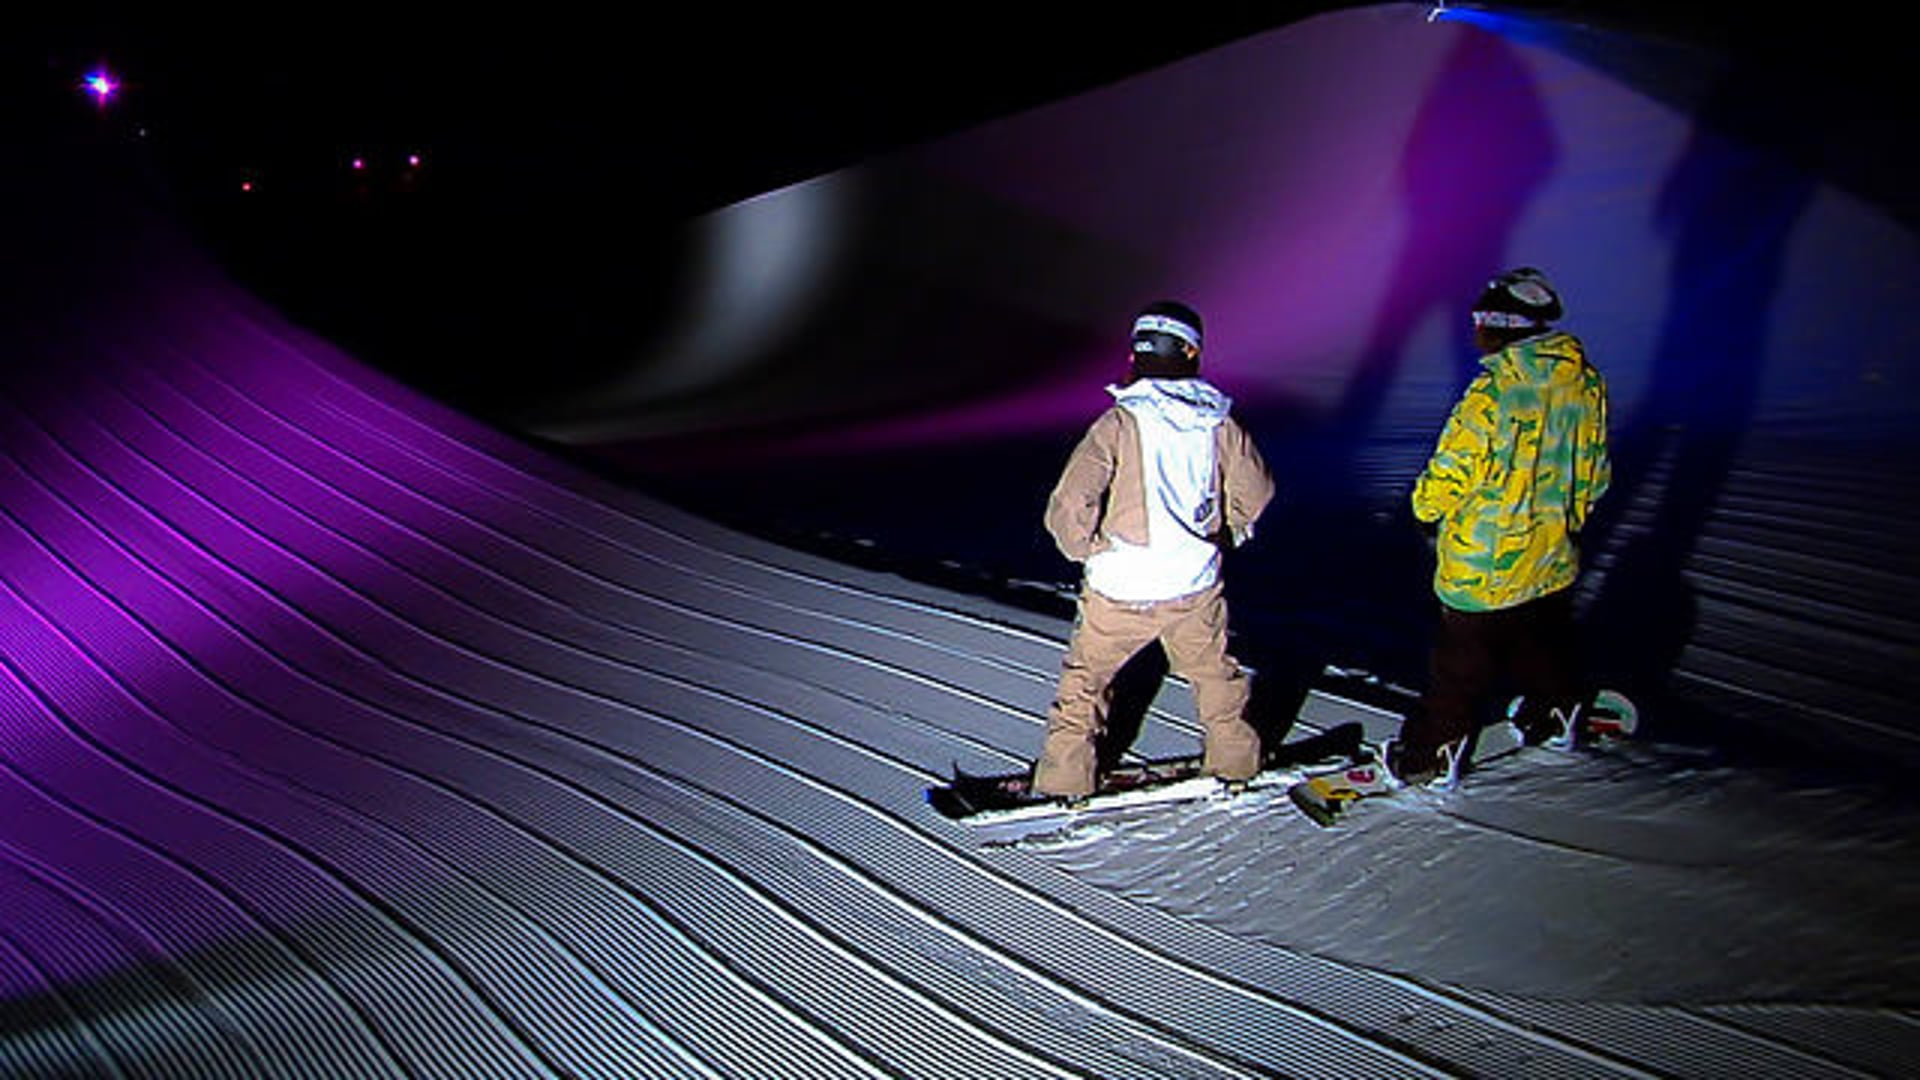 ACTION SPORTS:  Shaun White/Kevin Pearce - Picture This | 2012